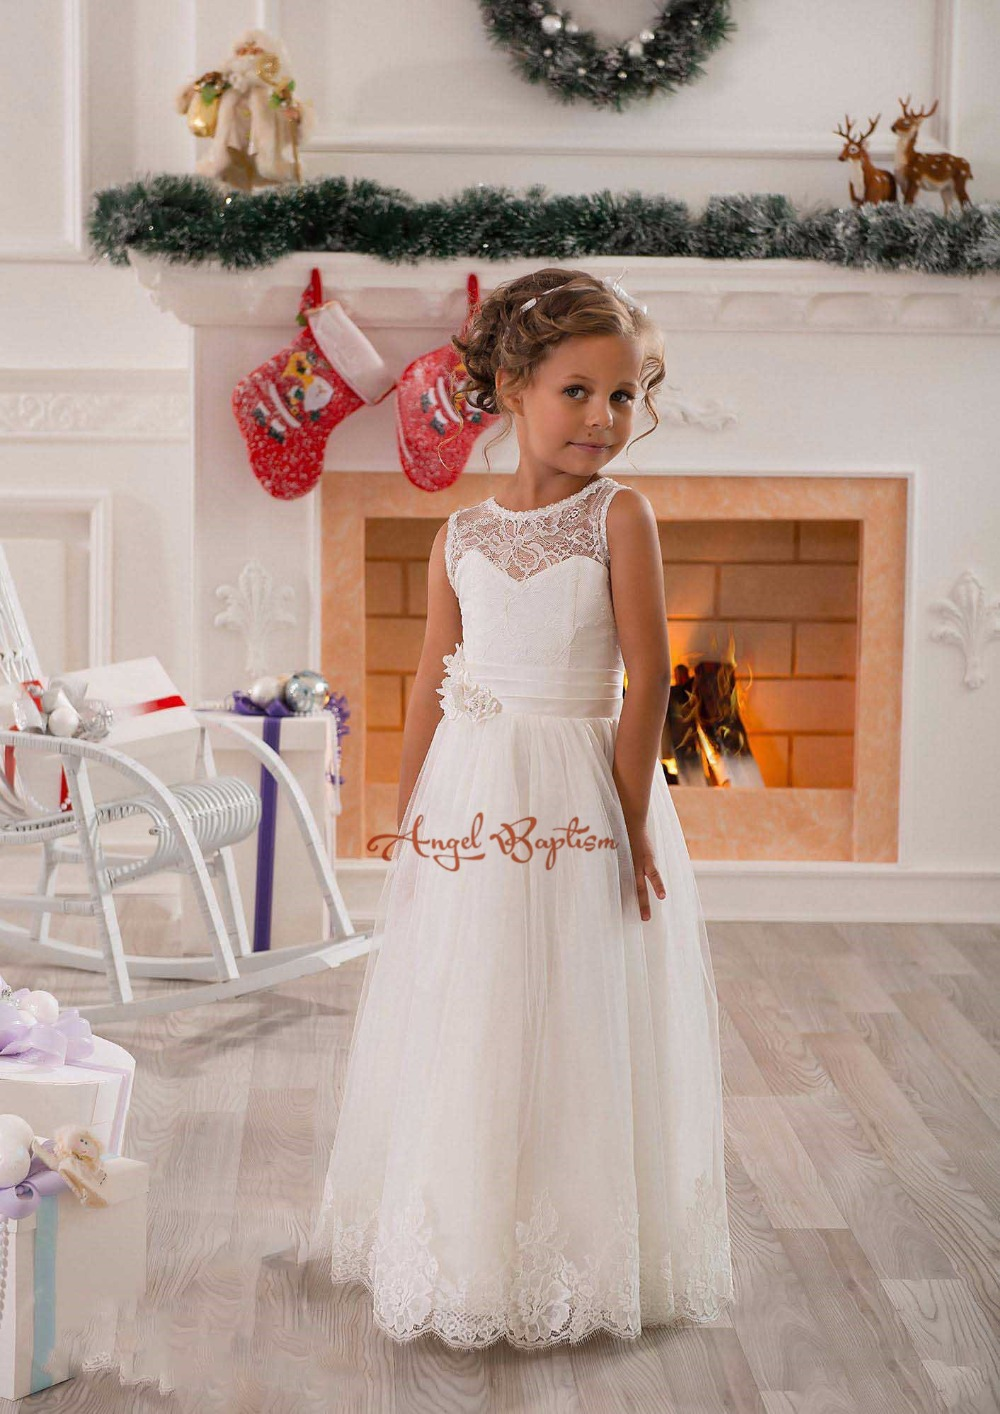 2016 White/Ivory Luxury Lace Flower Girl Dress for Wedding Floor Length first communion dresses for girls pageant dresses new pretty scoop ivory red flower girls dresses 2016 floor length girls holy first communion layered dress for wedding and part